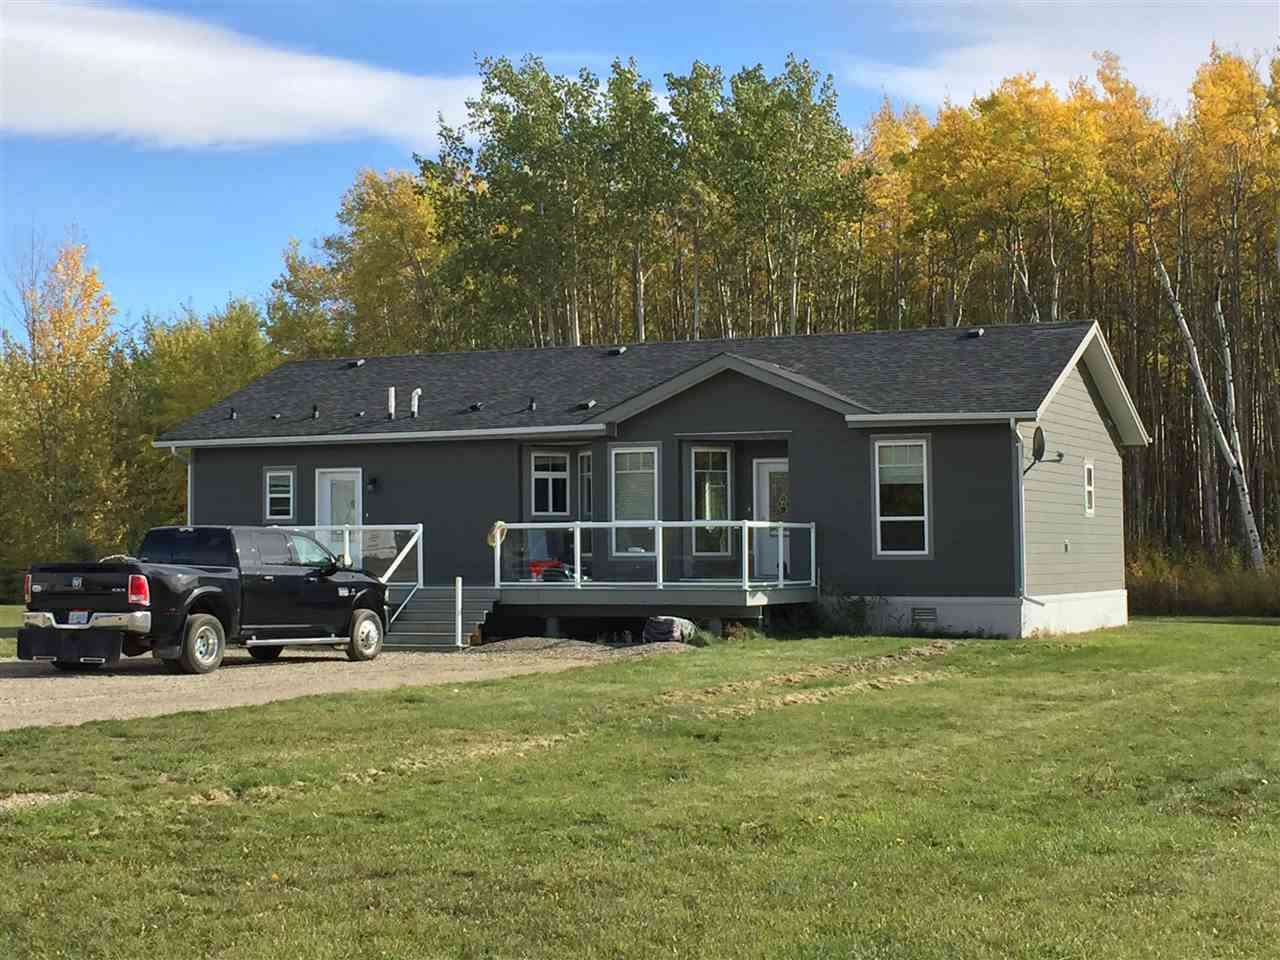 Main Photo: 9808 MAPLE Street in FT ST JOHN: Fort St. John - Rural W 100th Manufactured Home for sale (Fort St. John (Zone 60))  : MLS(r) # R2002304